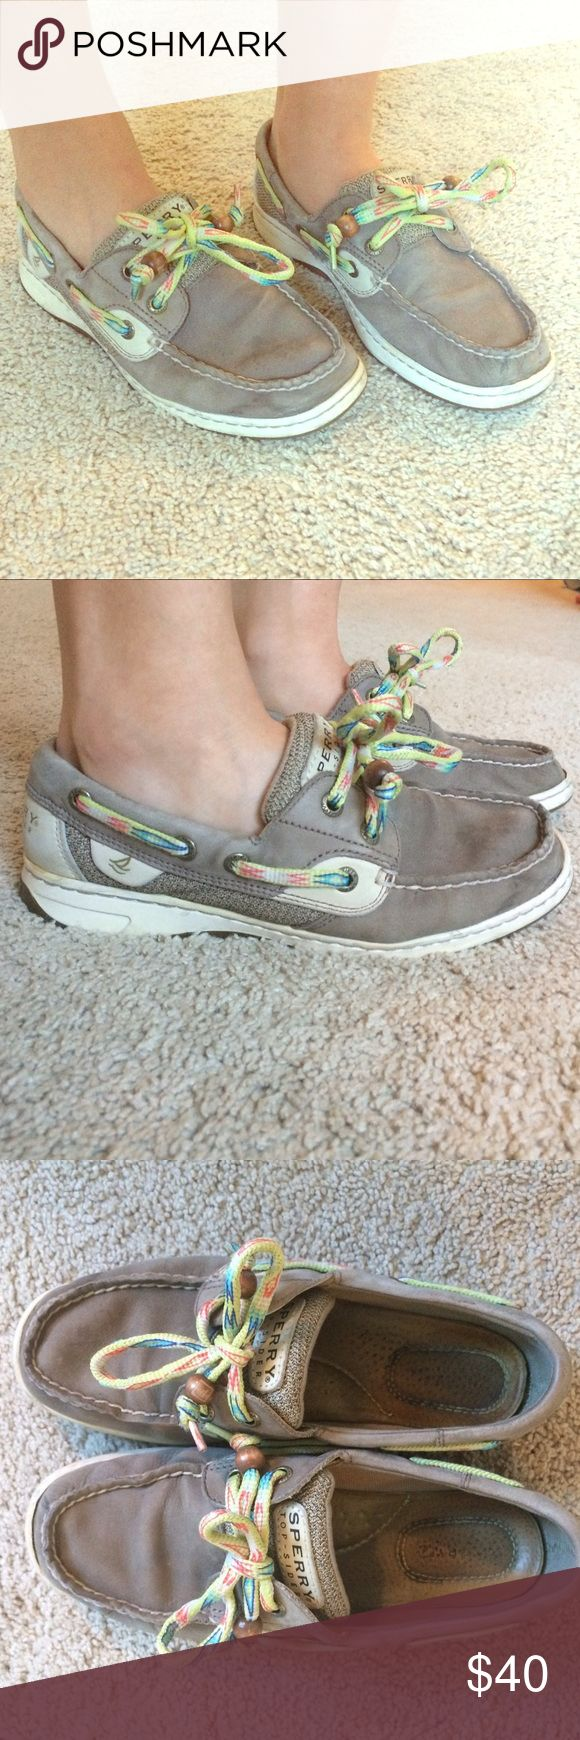 Sperry Topsiders Women's boat shoes Very comfortable soft leather. Never gave me any blisters. Fun laces. Used. Size 6. Sperry Top-Sider Shoes Flats & Loafers